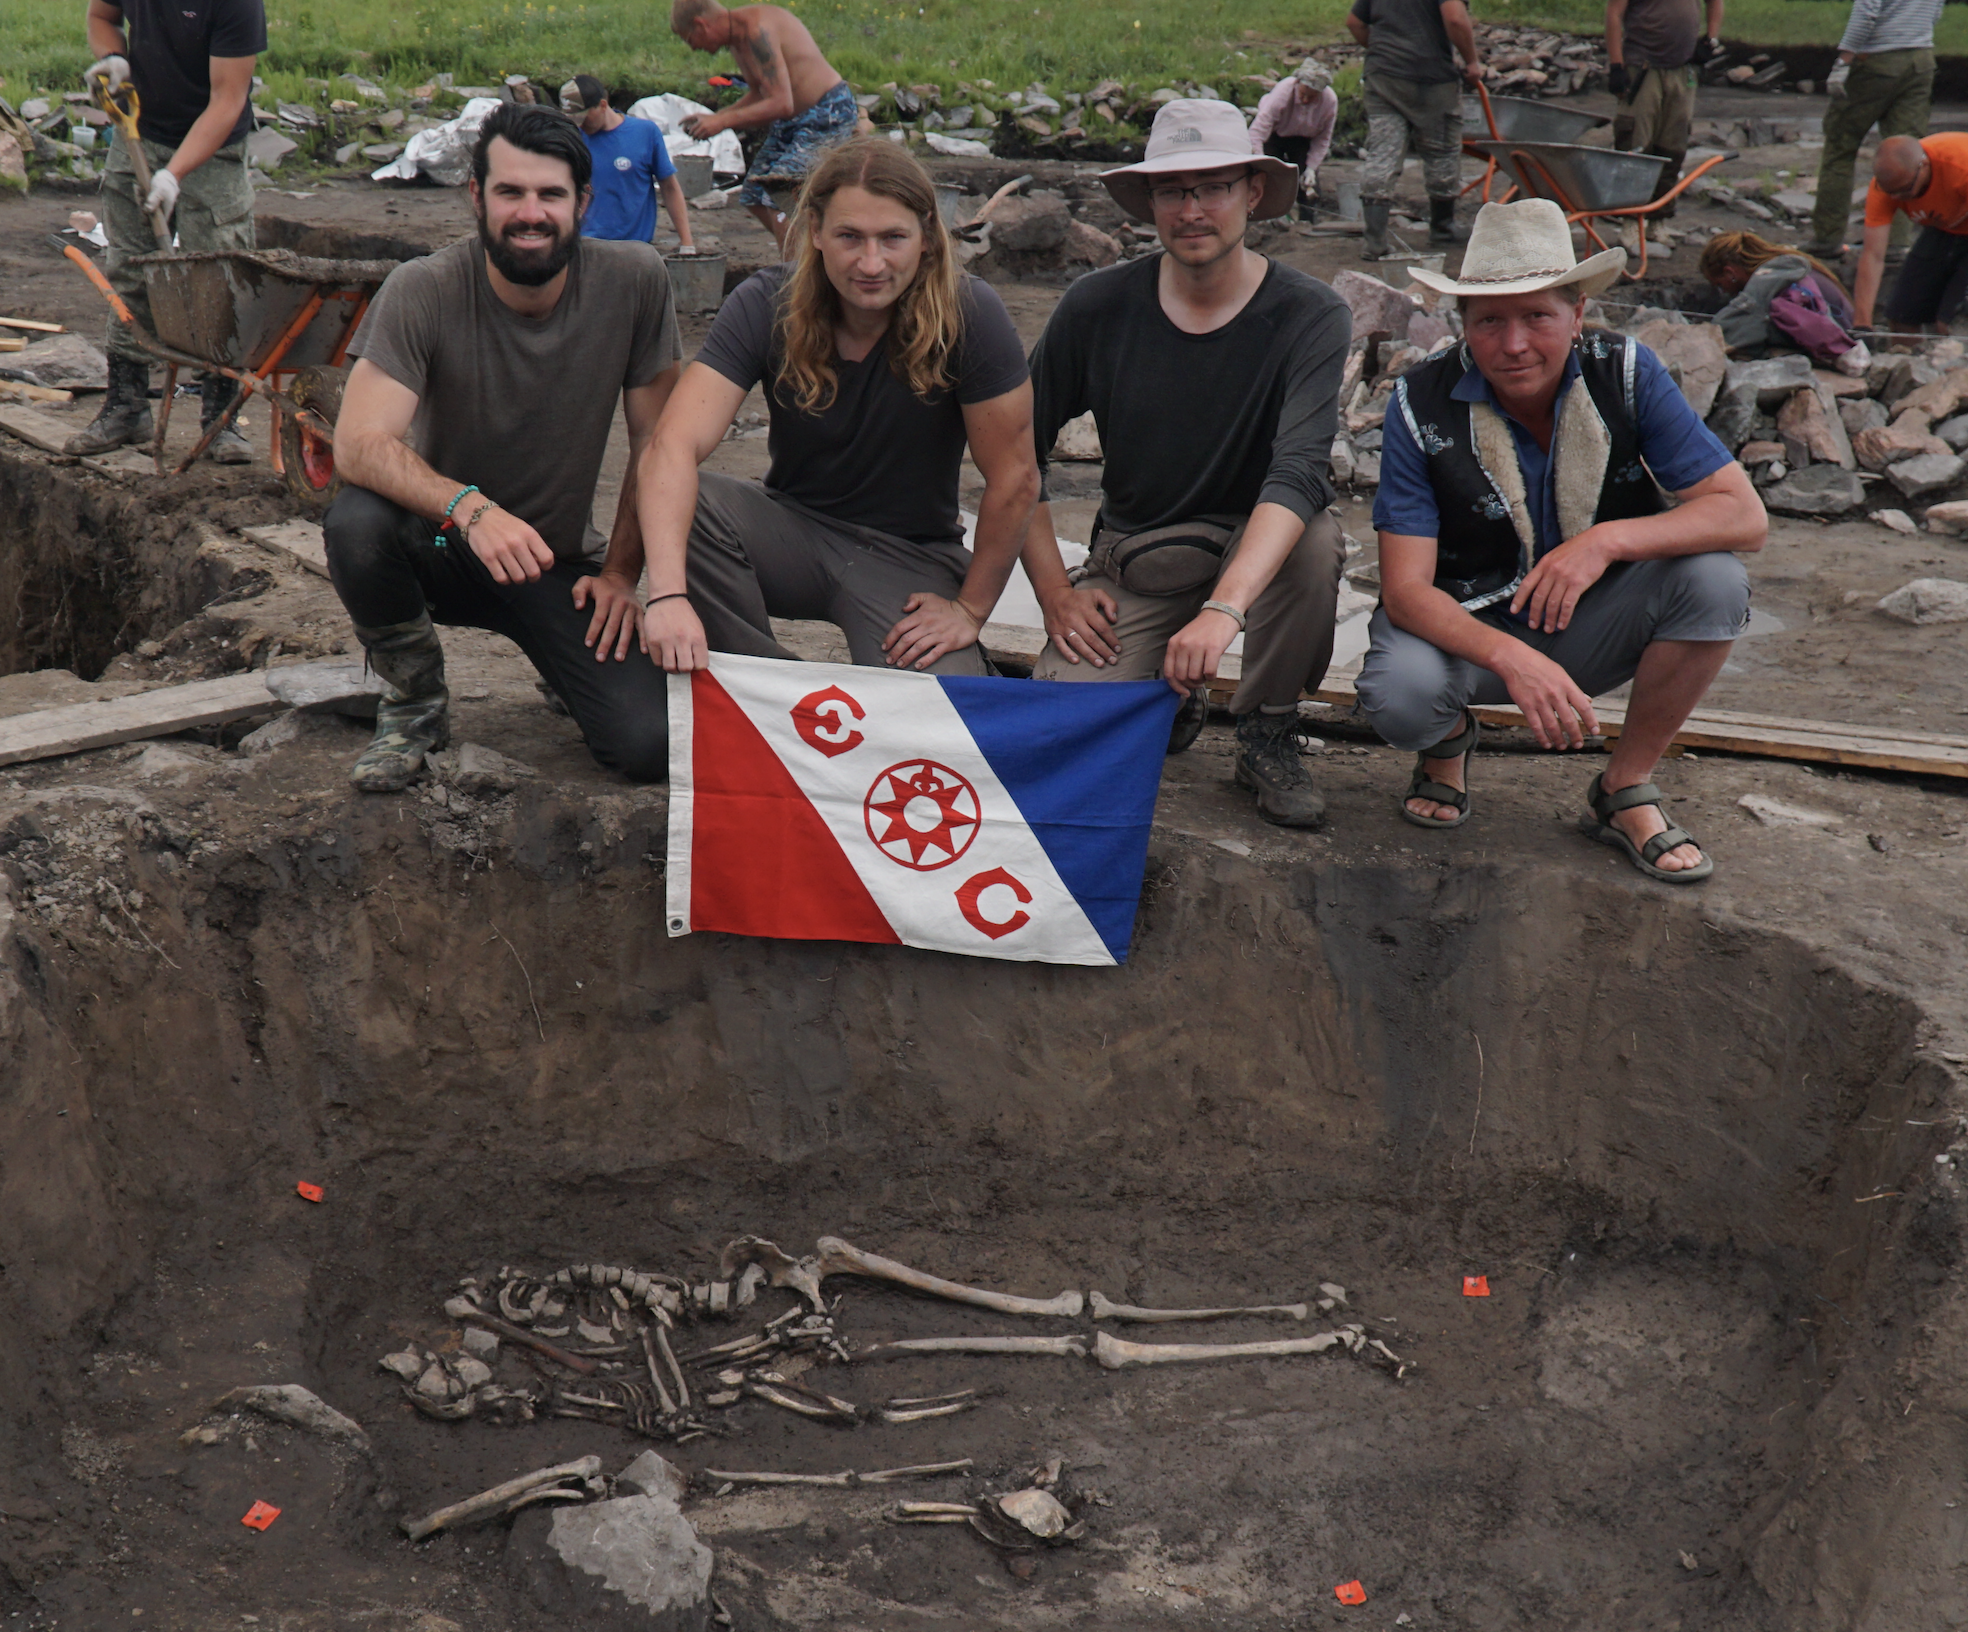 Trevor, Gino, Jegor and Timur with Explorers Club Flag #134 in front of a quadruple burial dating back 1,700 years. Here you see an adult embracing a child. They were surrounded by iron arrowheads and knives.